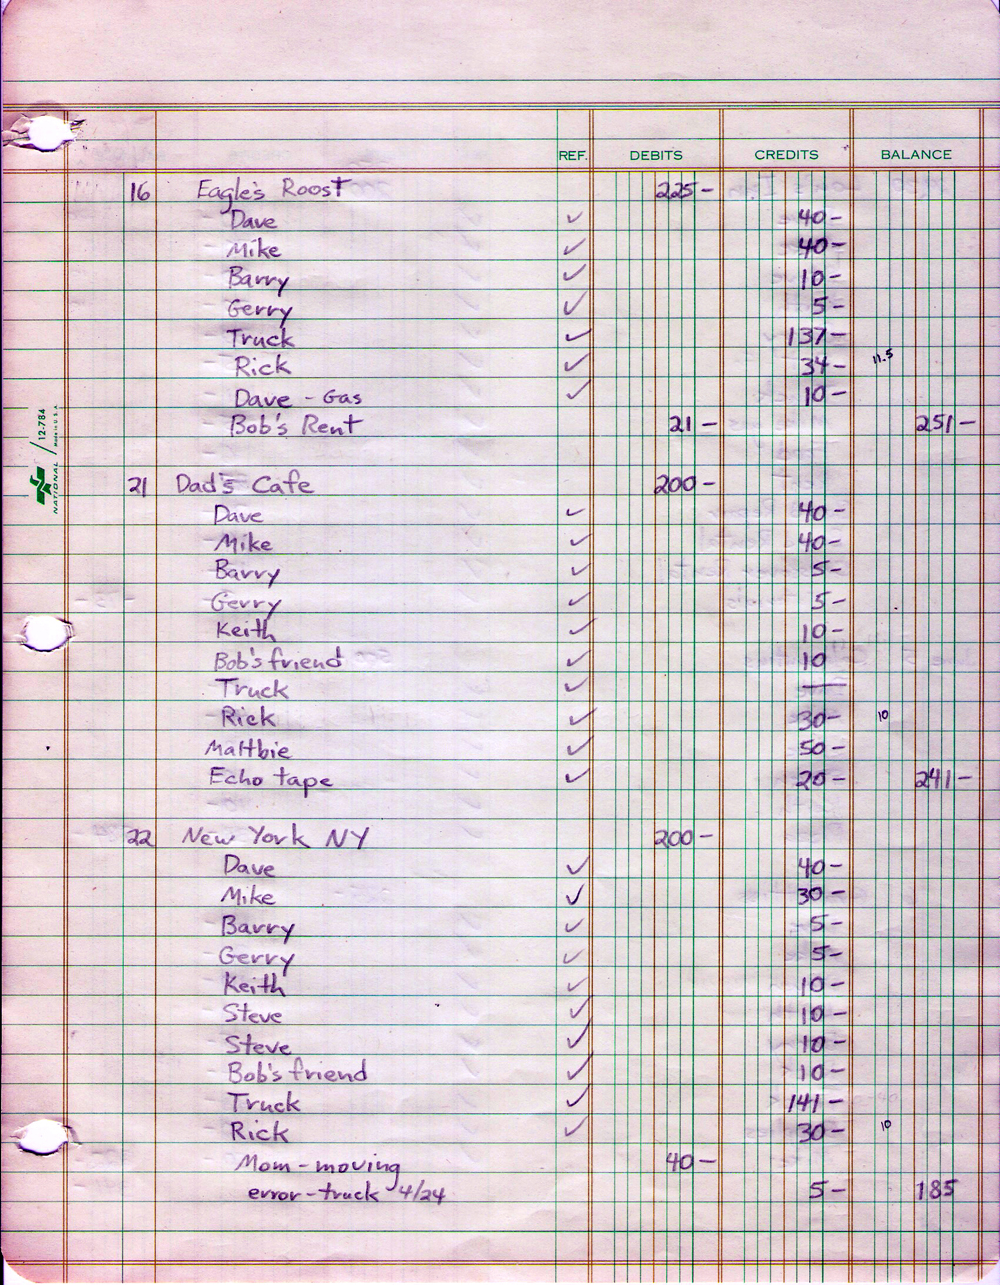 May earnings and expenditure 1981